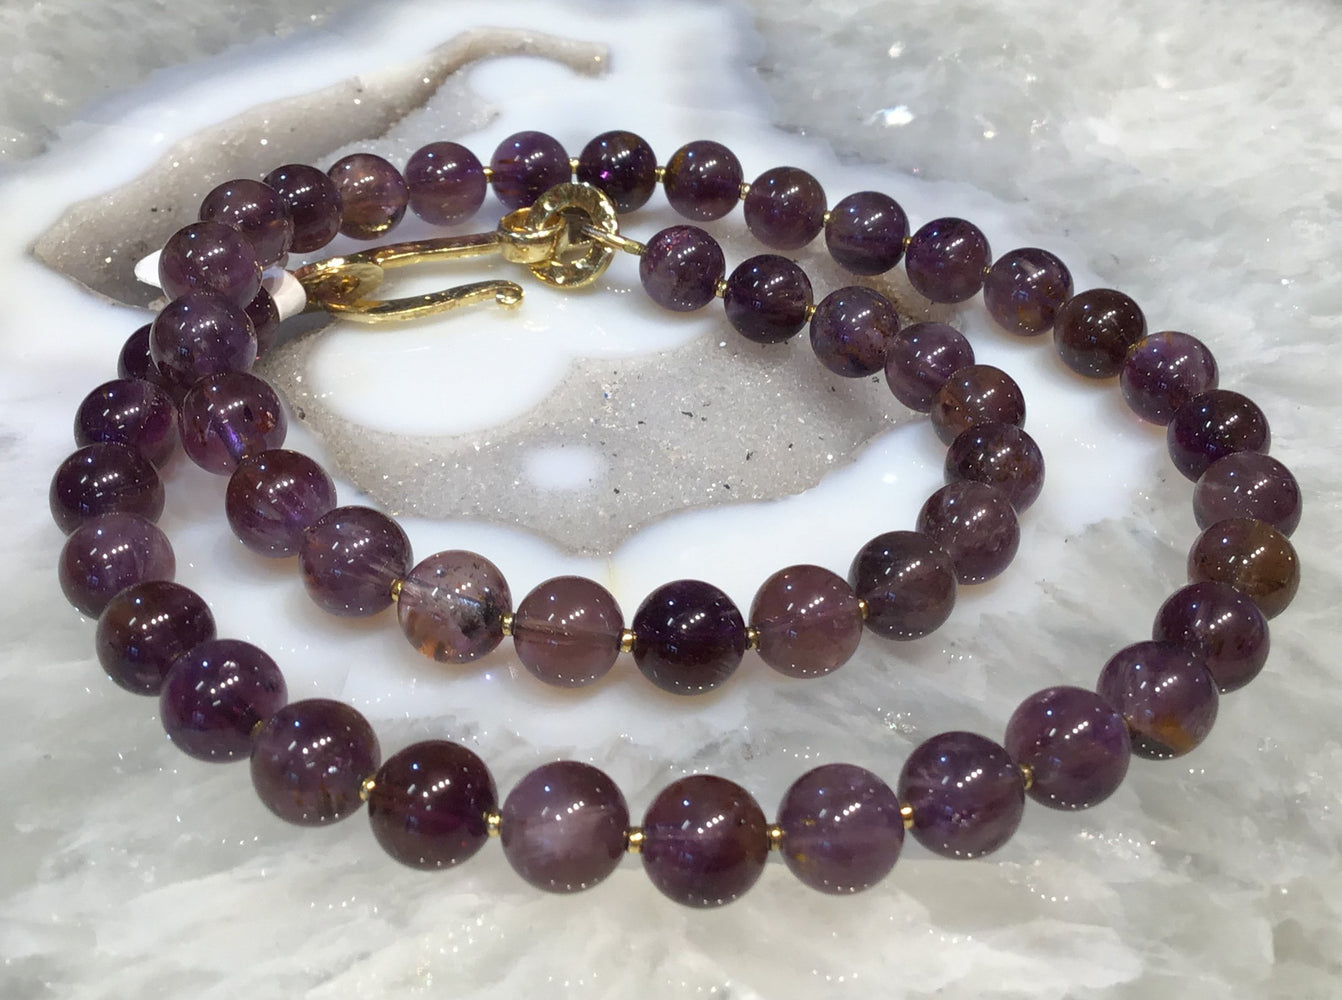 8mm Cacoxenite amethyst round gemstone necklace